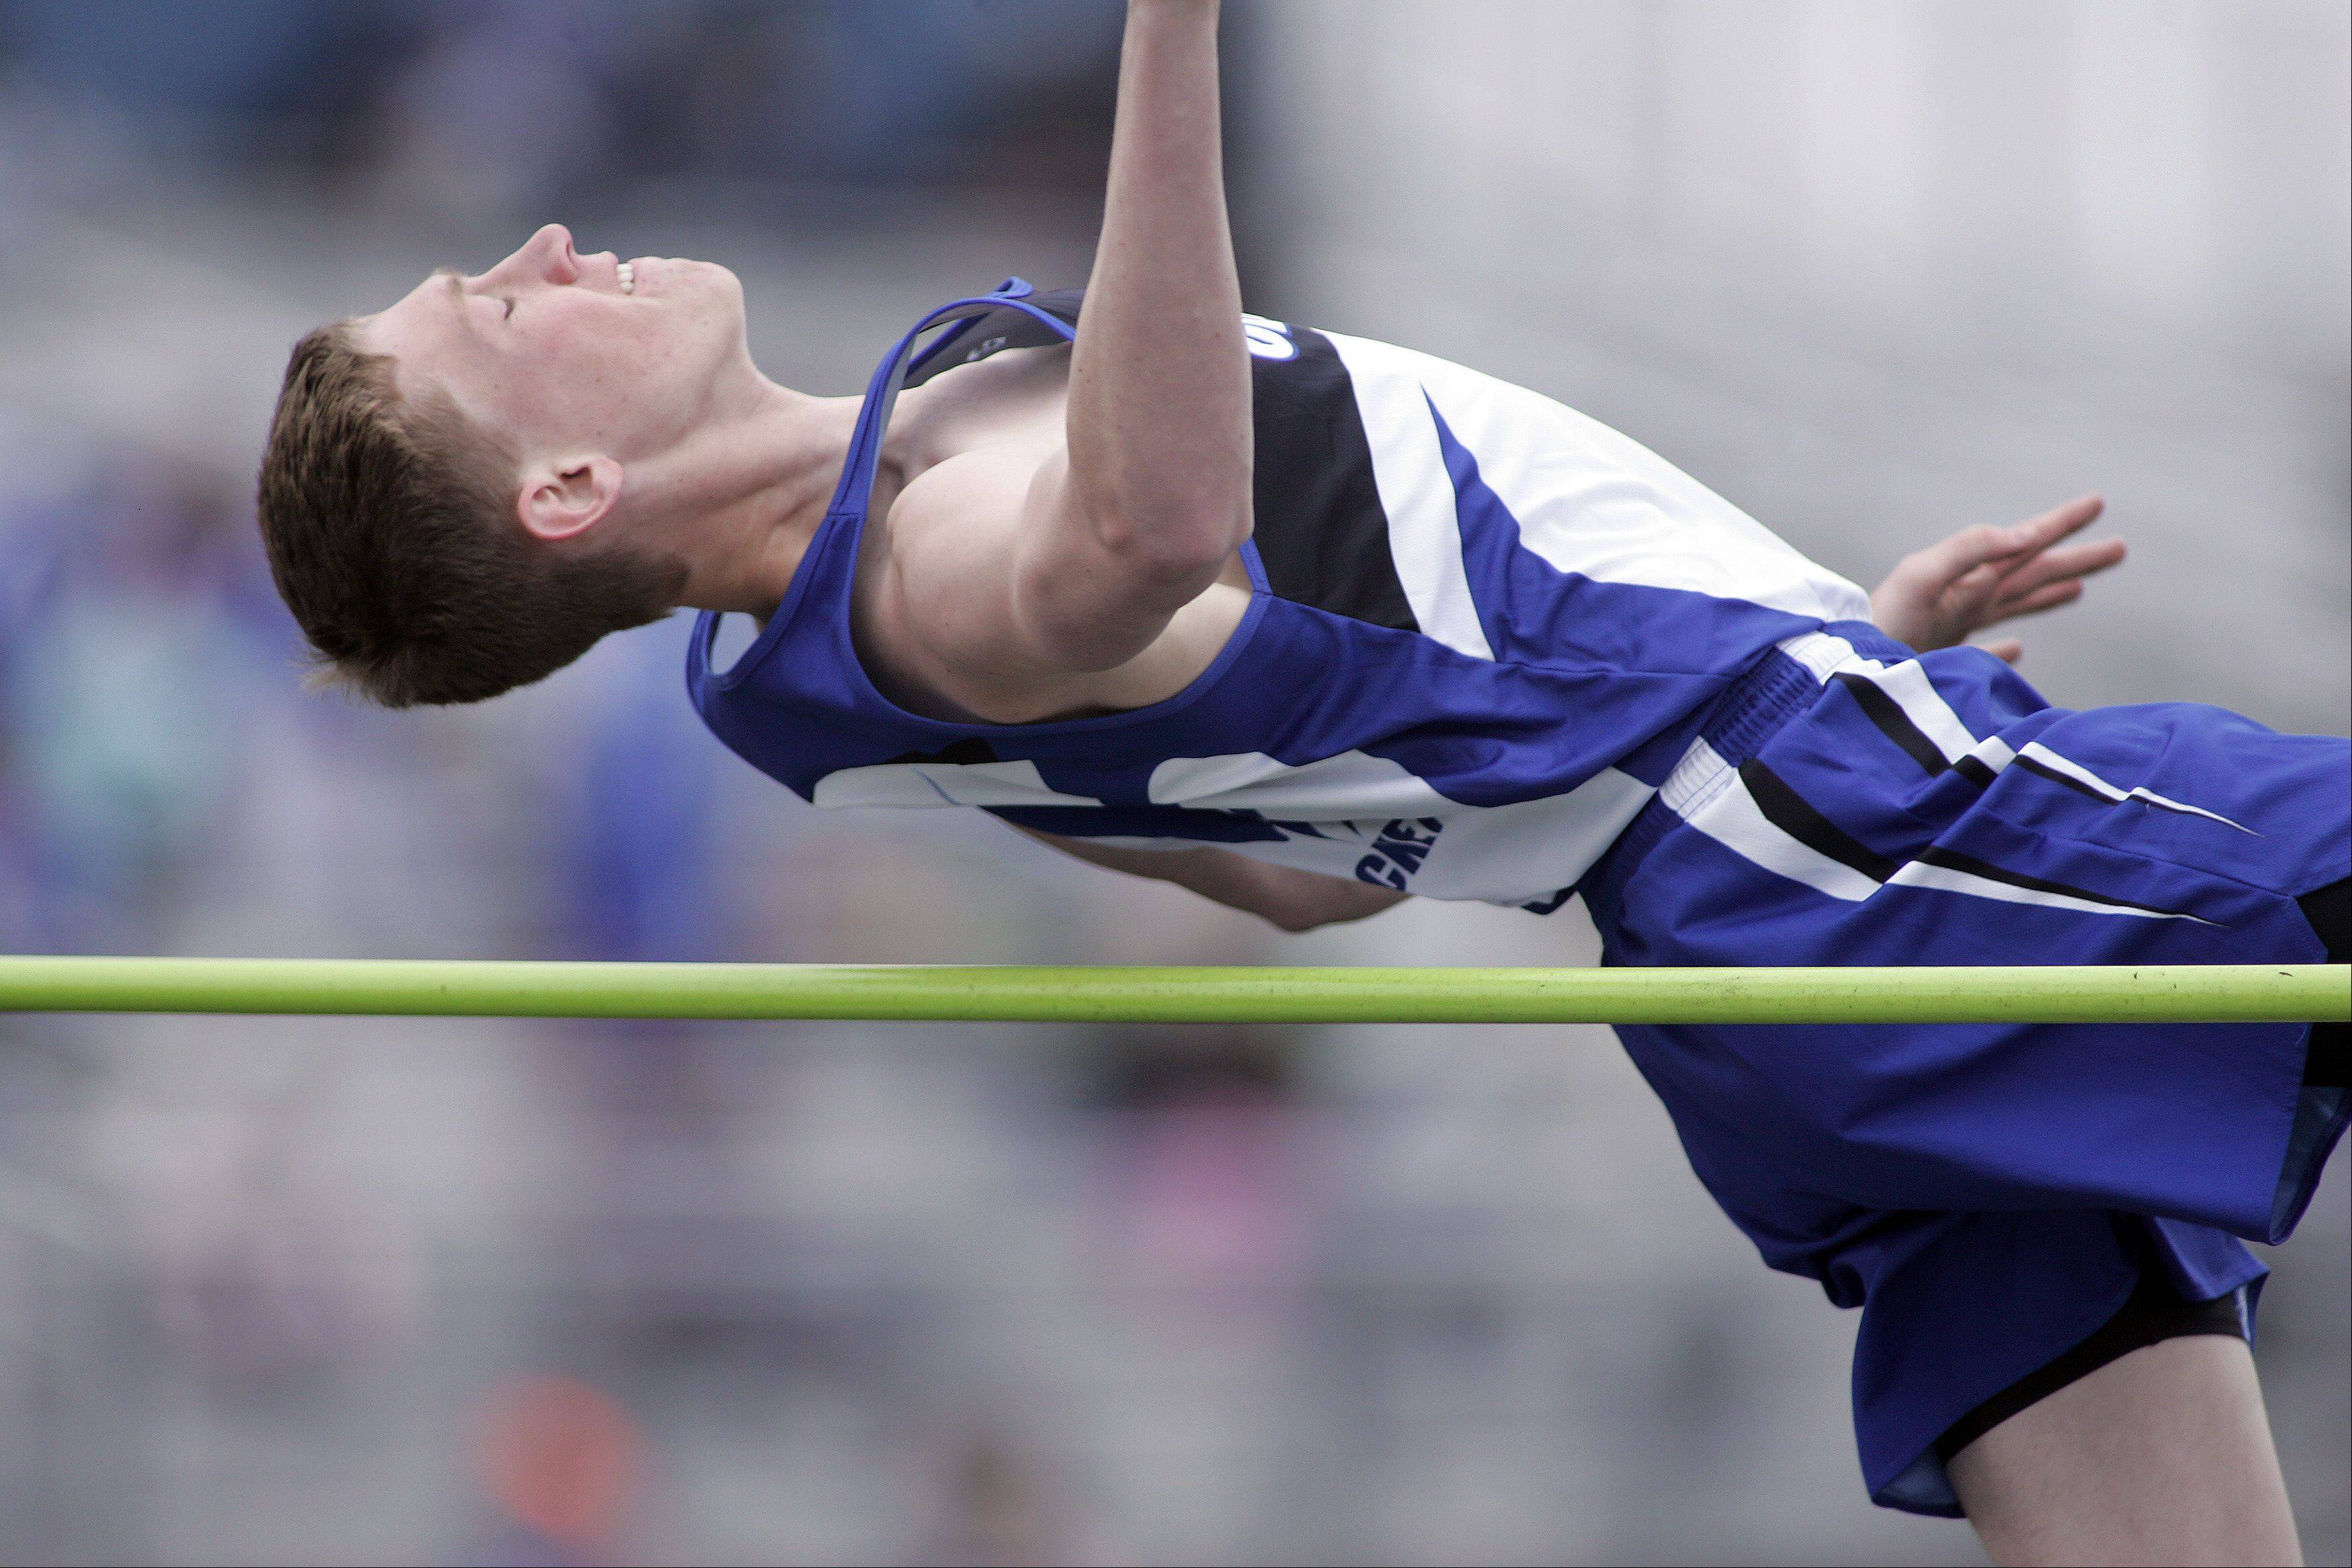 Central's Dan McCurdy competes in the high jump during the Kane County boys track meet Friday at Burlington Central.